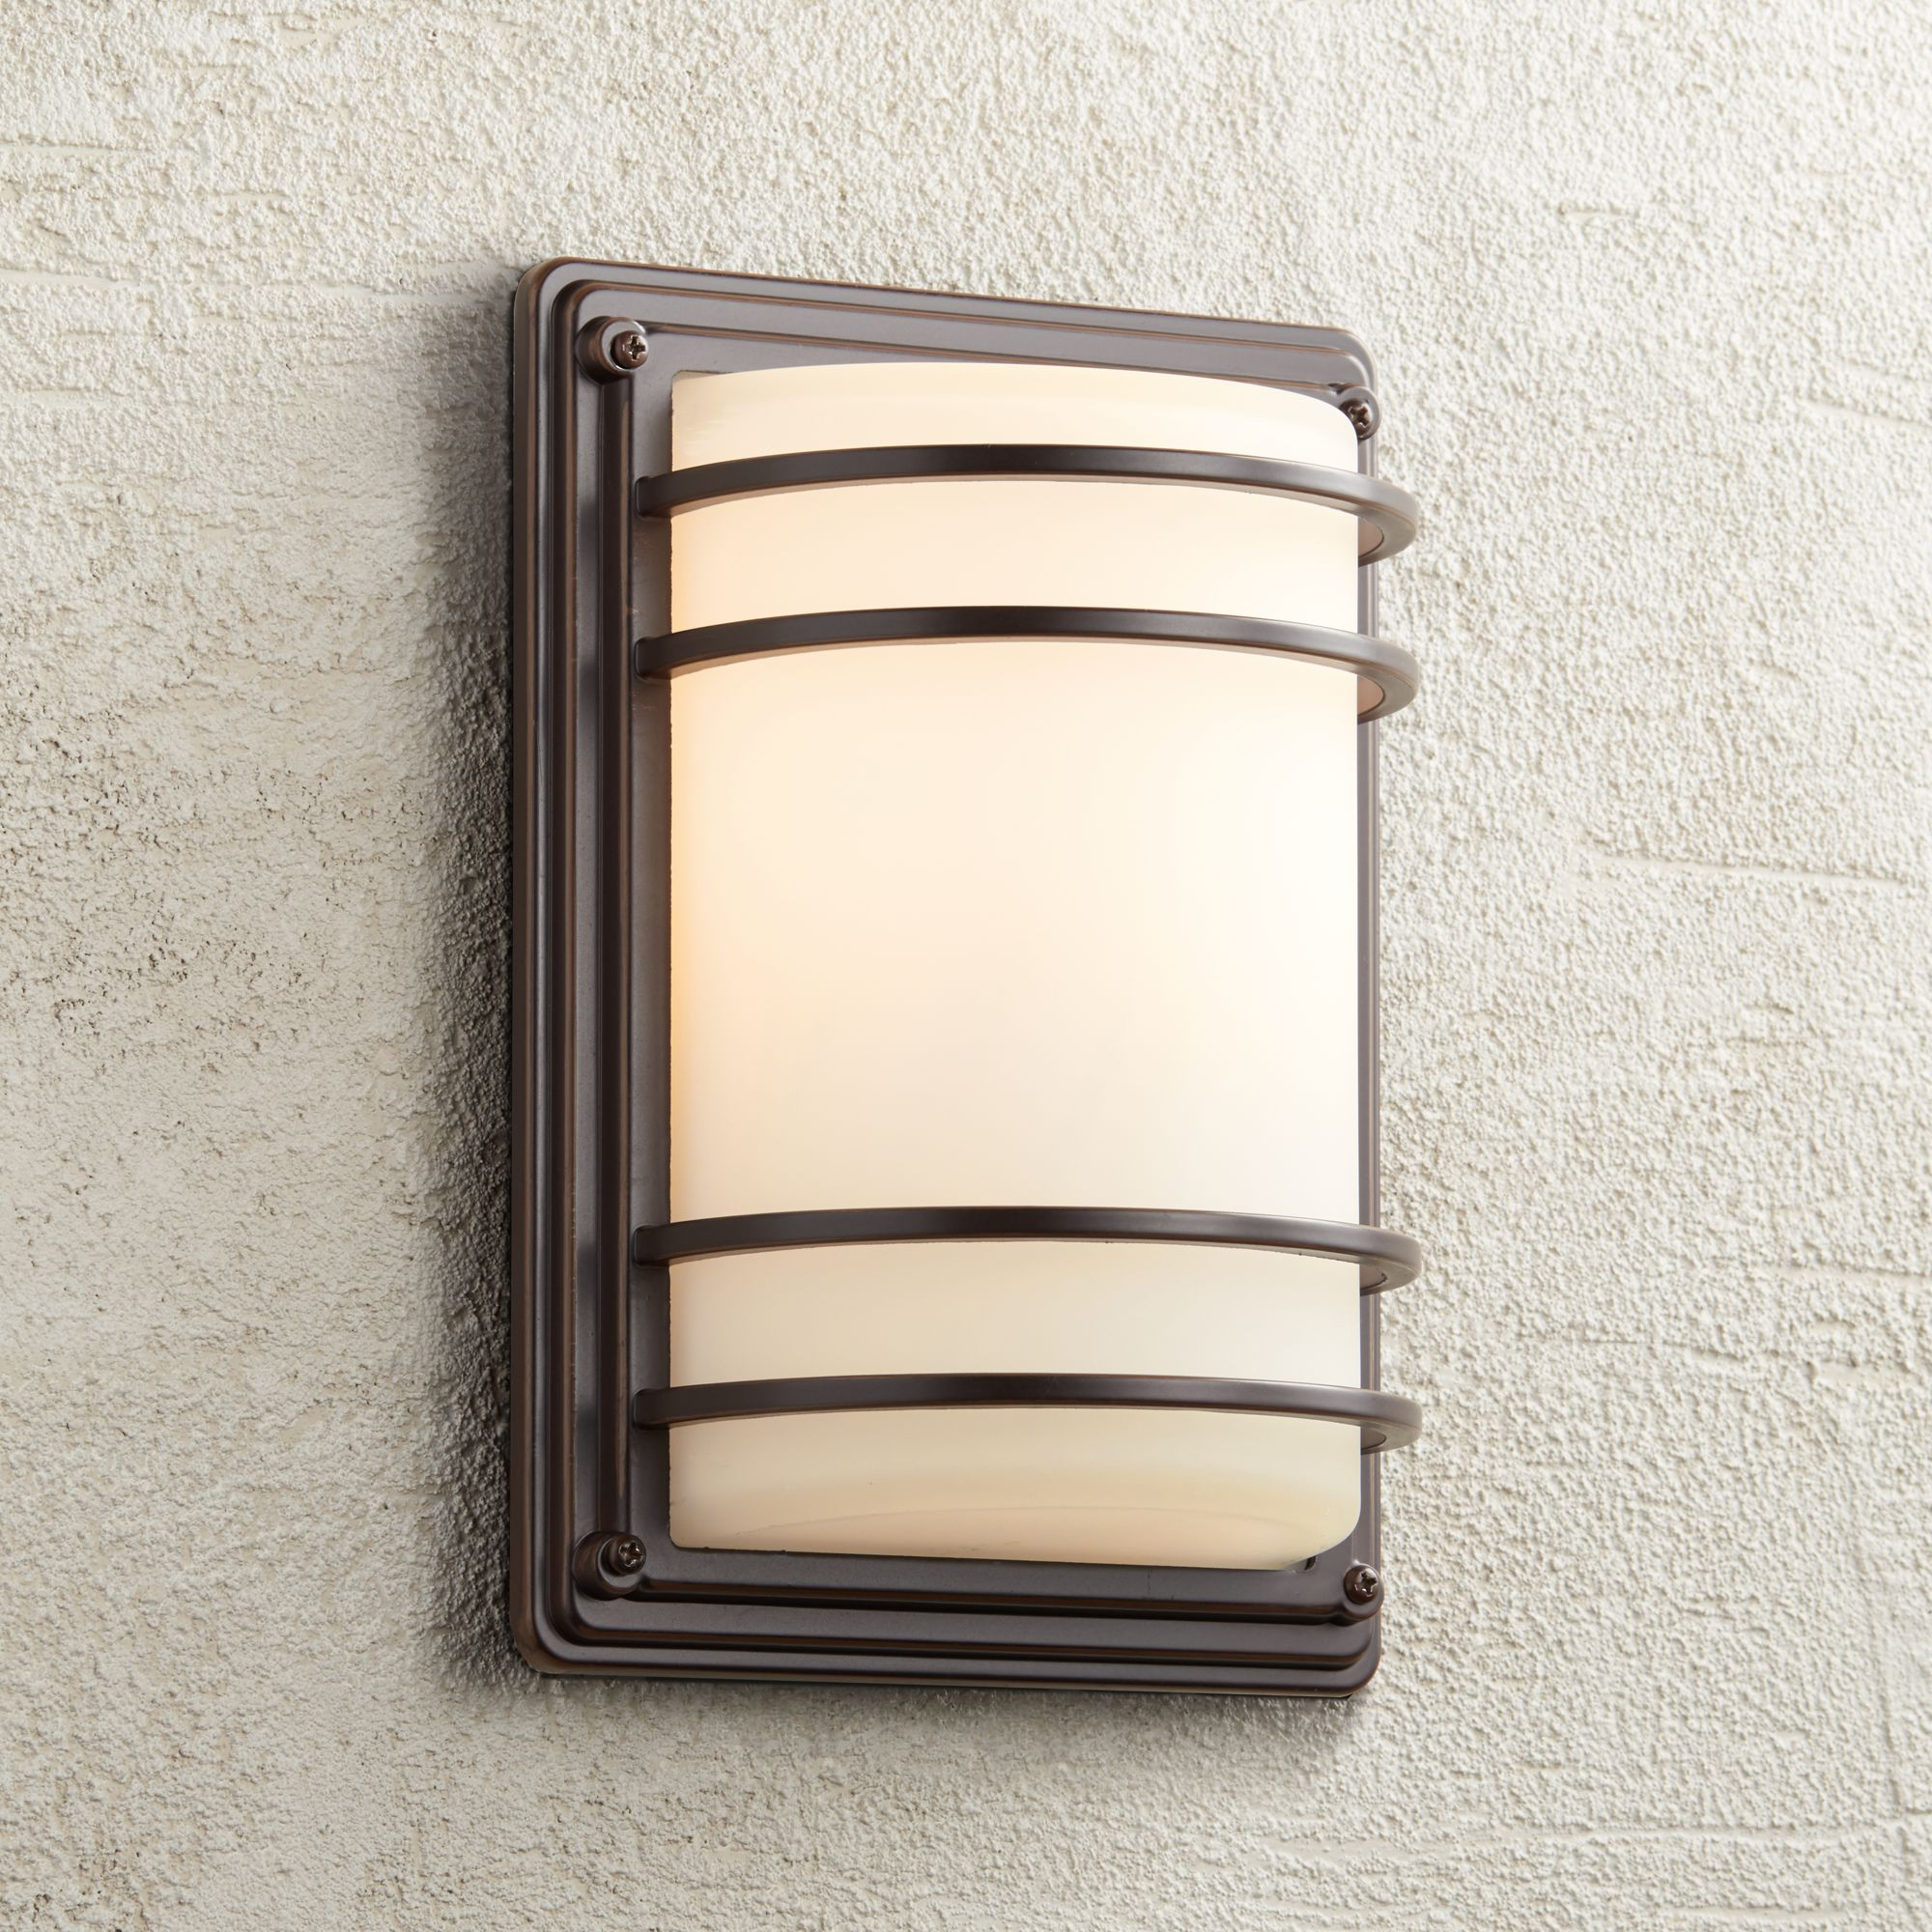 John Timberland Modern Outdoor Wall Light Fixture Rubbed Bronze 11 Opal Gl Sconce For Exterior House Porch Patio Deck